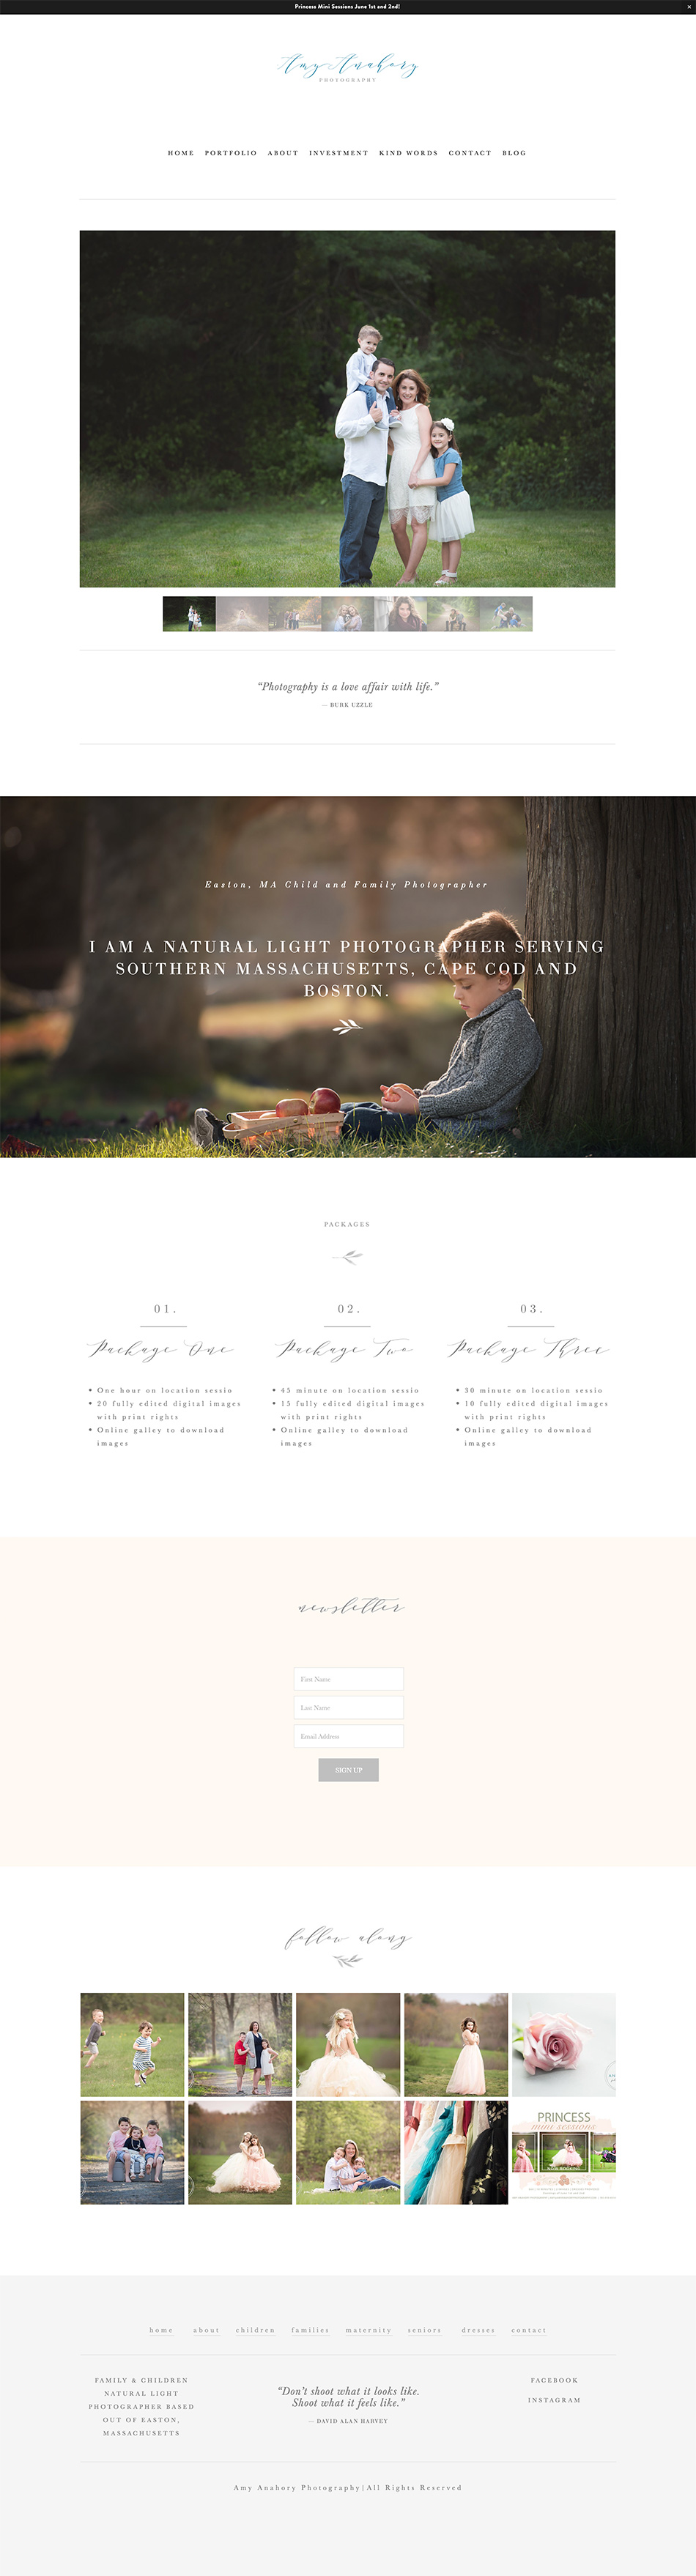 squarespace-website-design-1.jpg